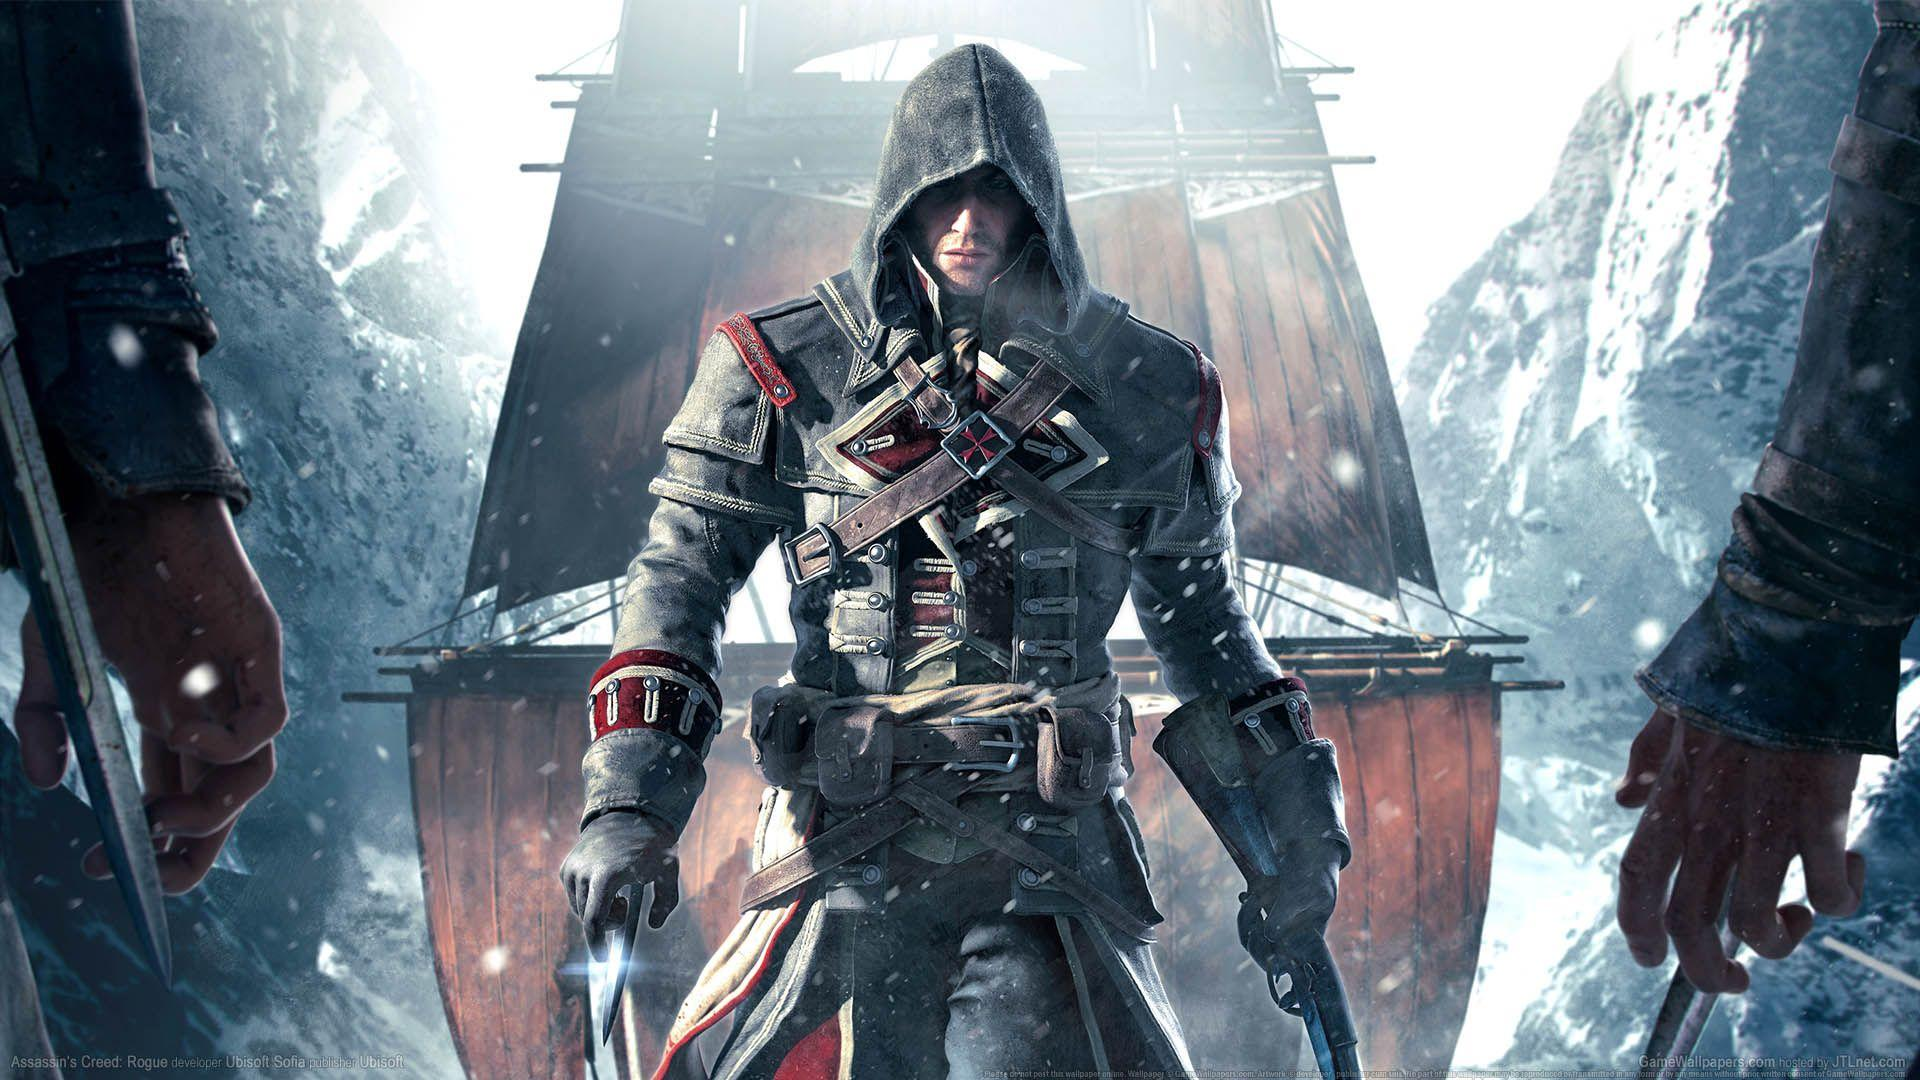 Fondos de pantalla de assassins creed rogue